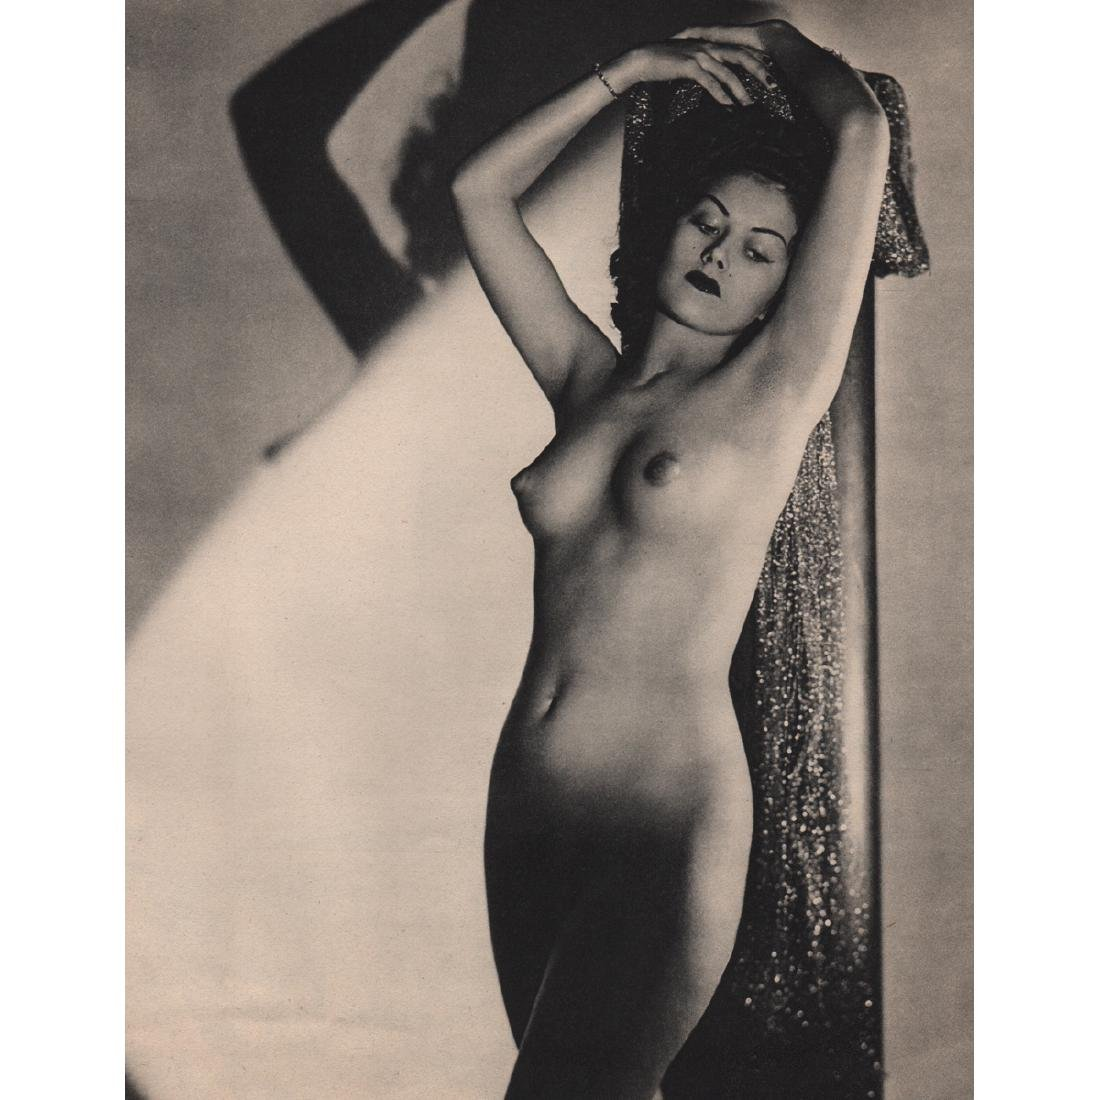 BRUNO OF HOLLYWOOD - Nude